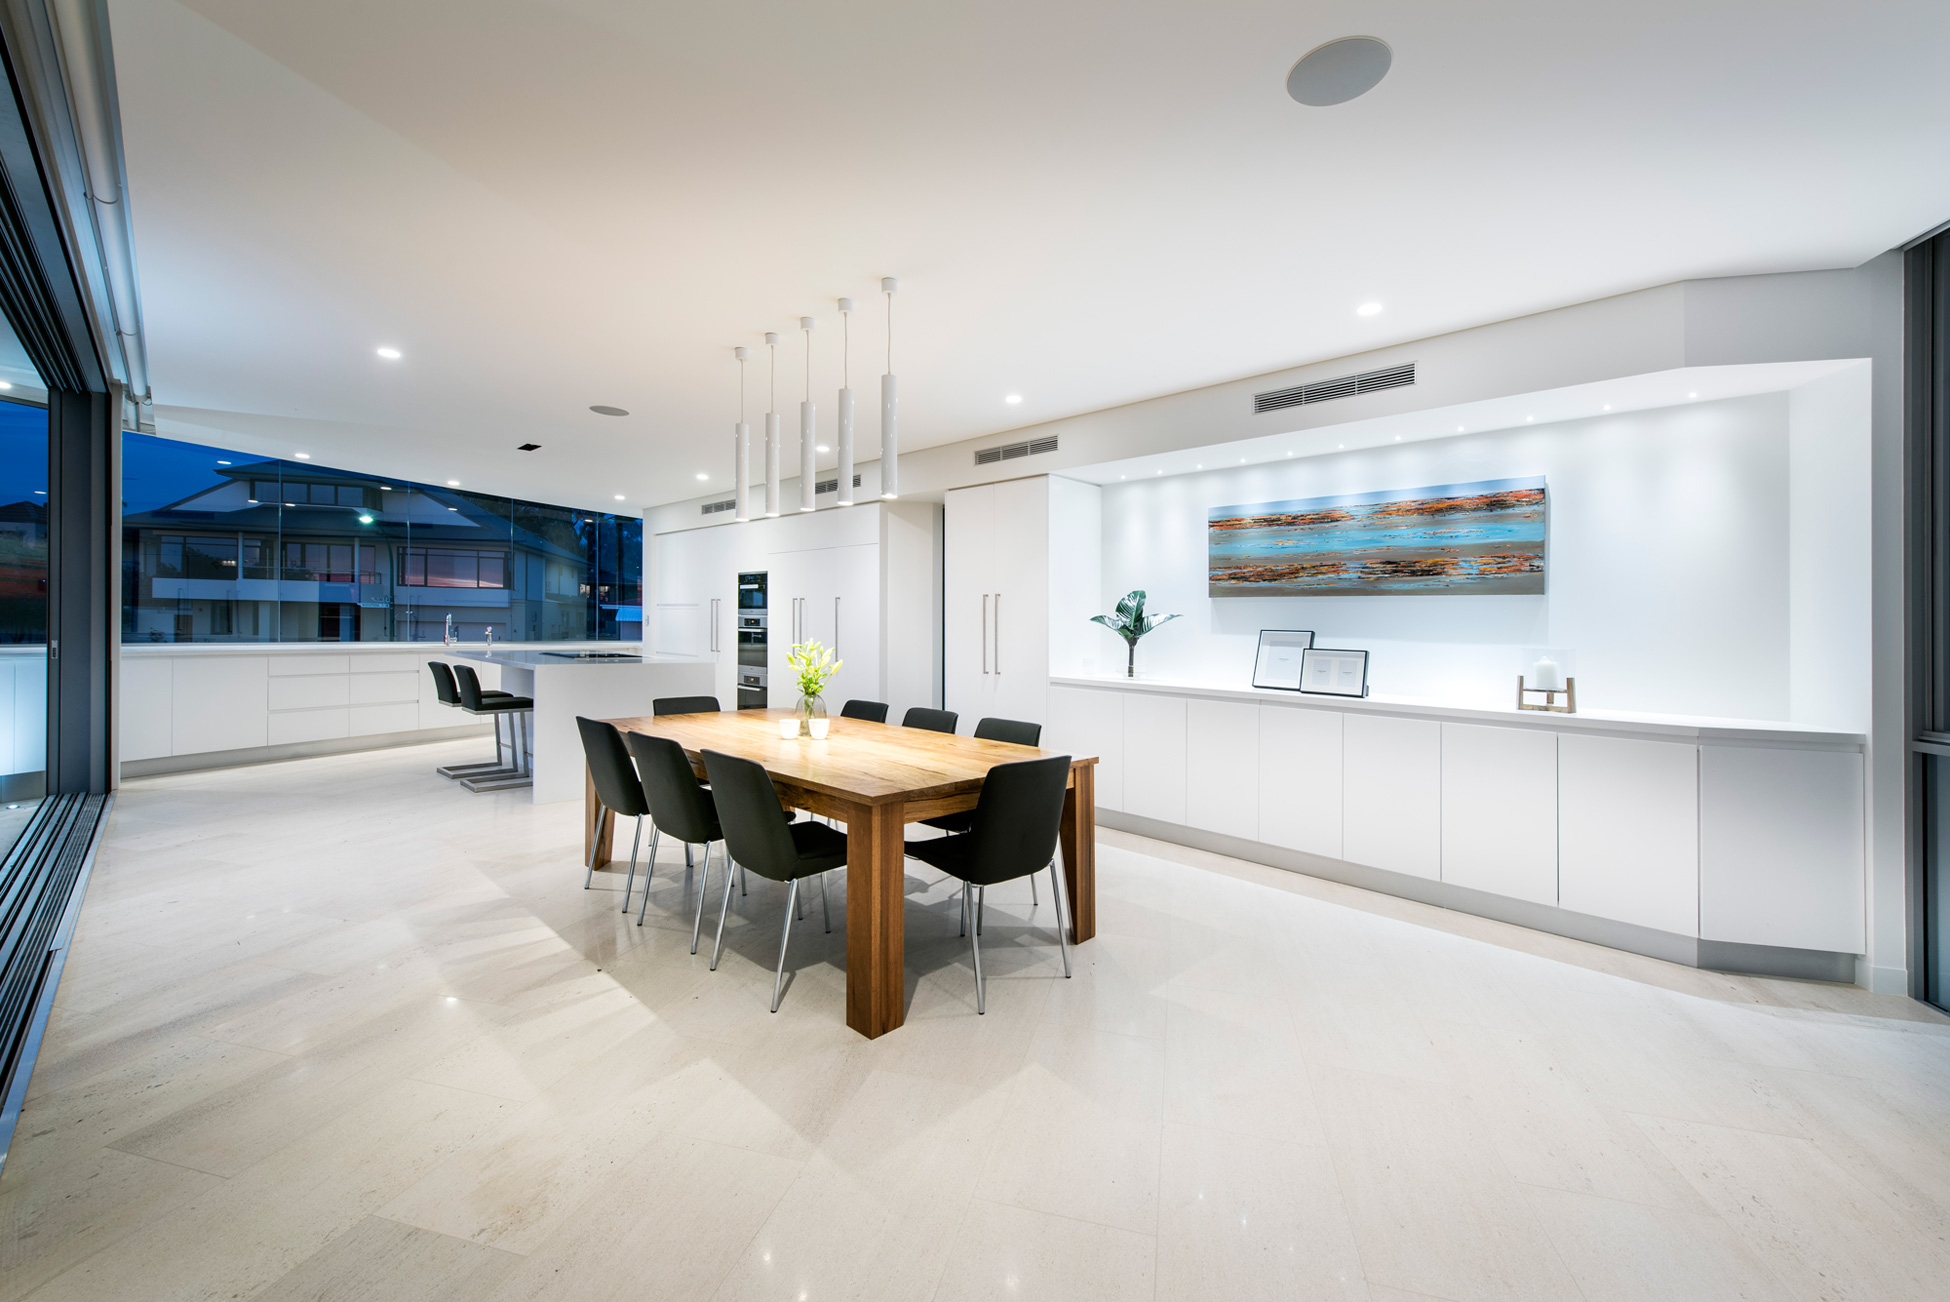 City-Beach-residence-kitchen-and-dining-space